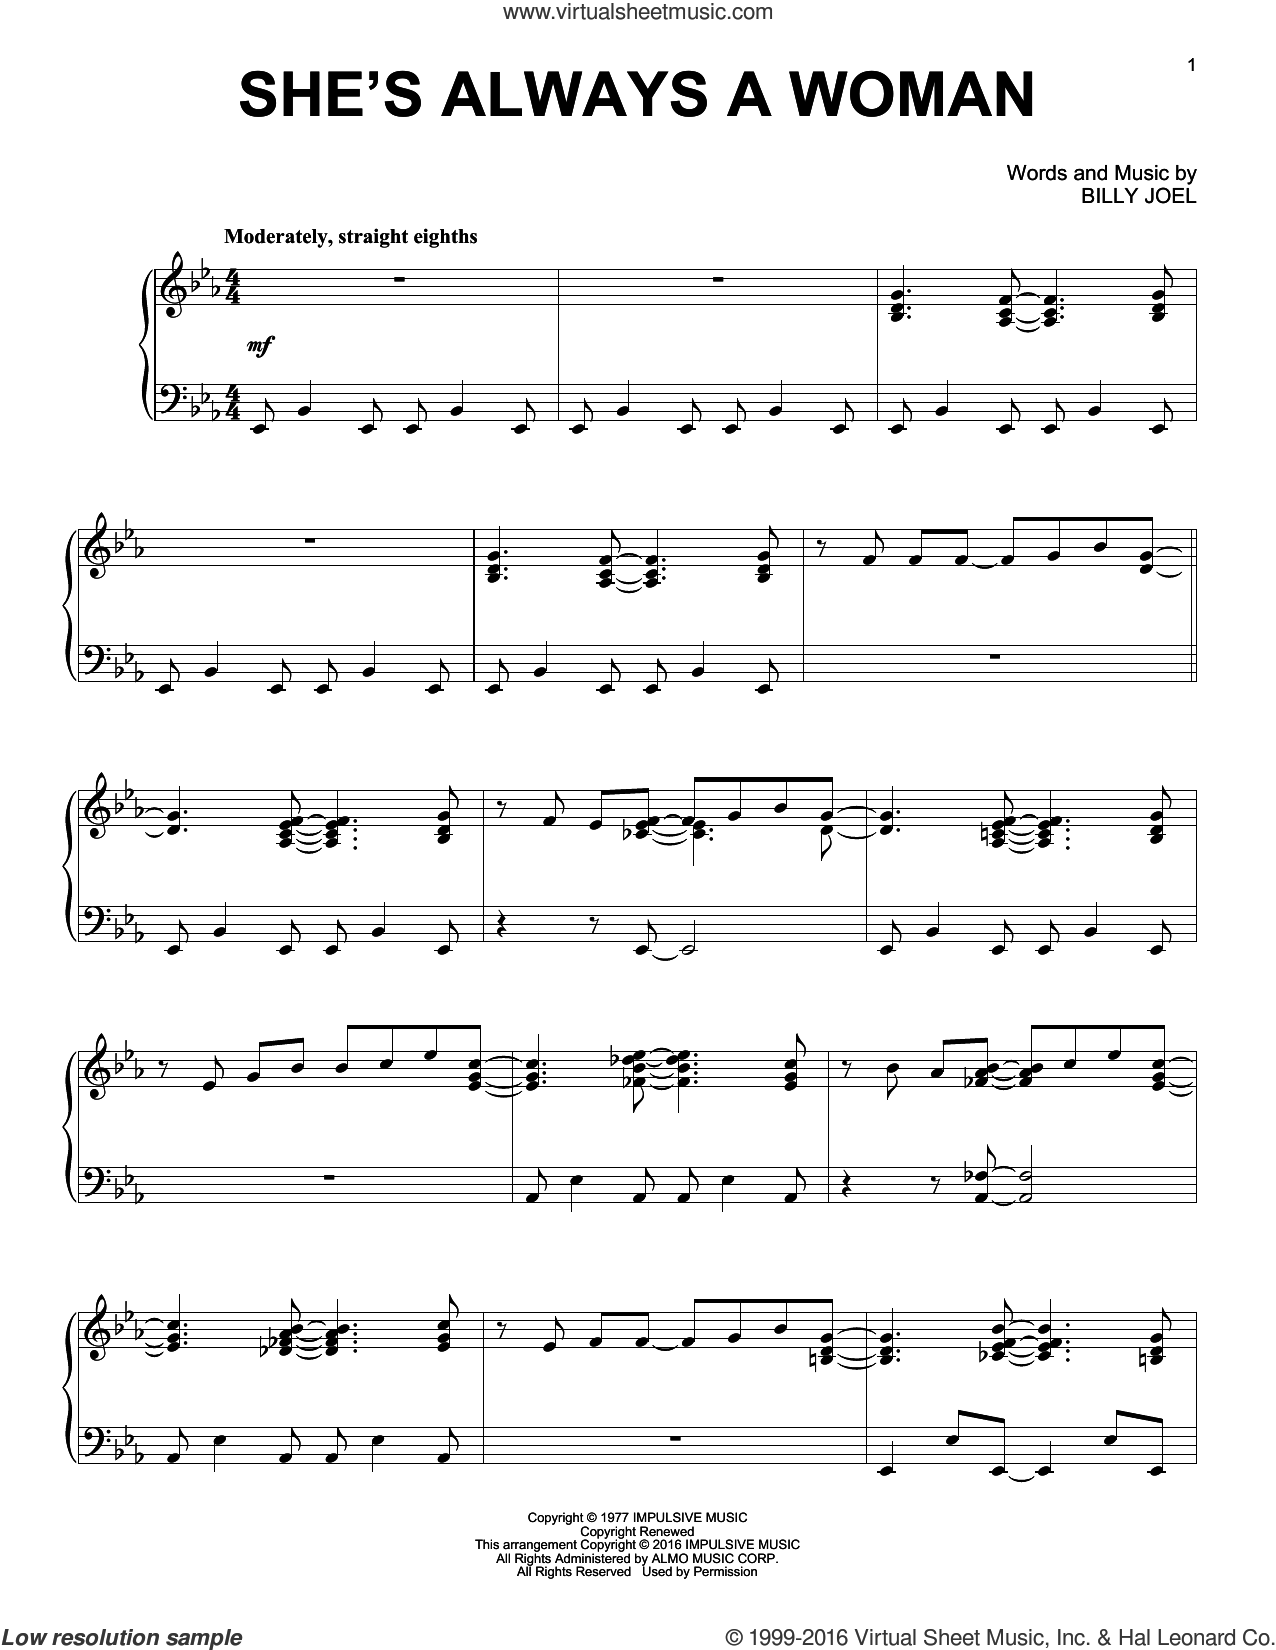 She's Always A Woman sheet music for piano solo by Billy Joel, intermediate skill level